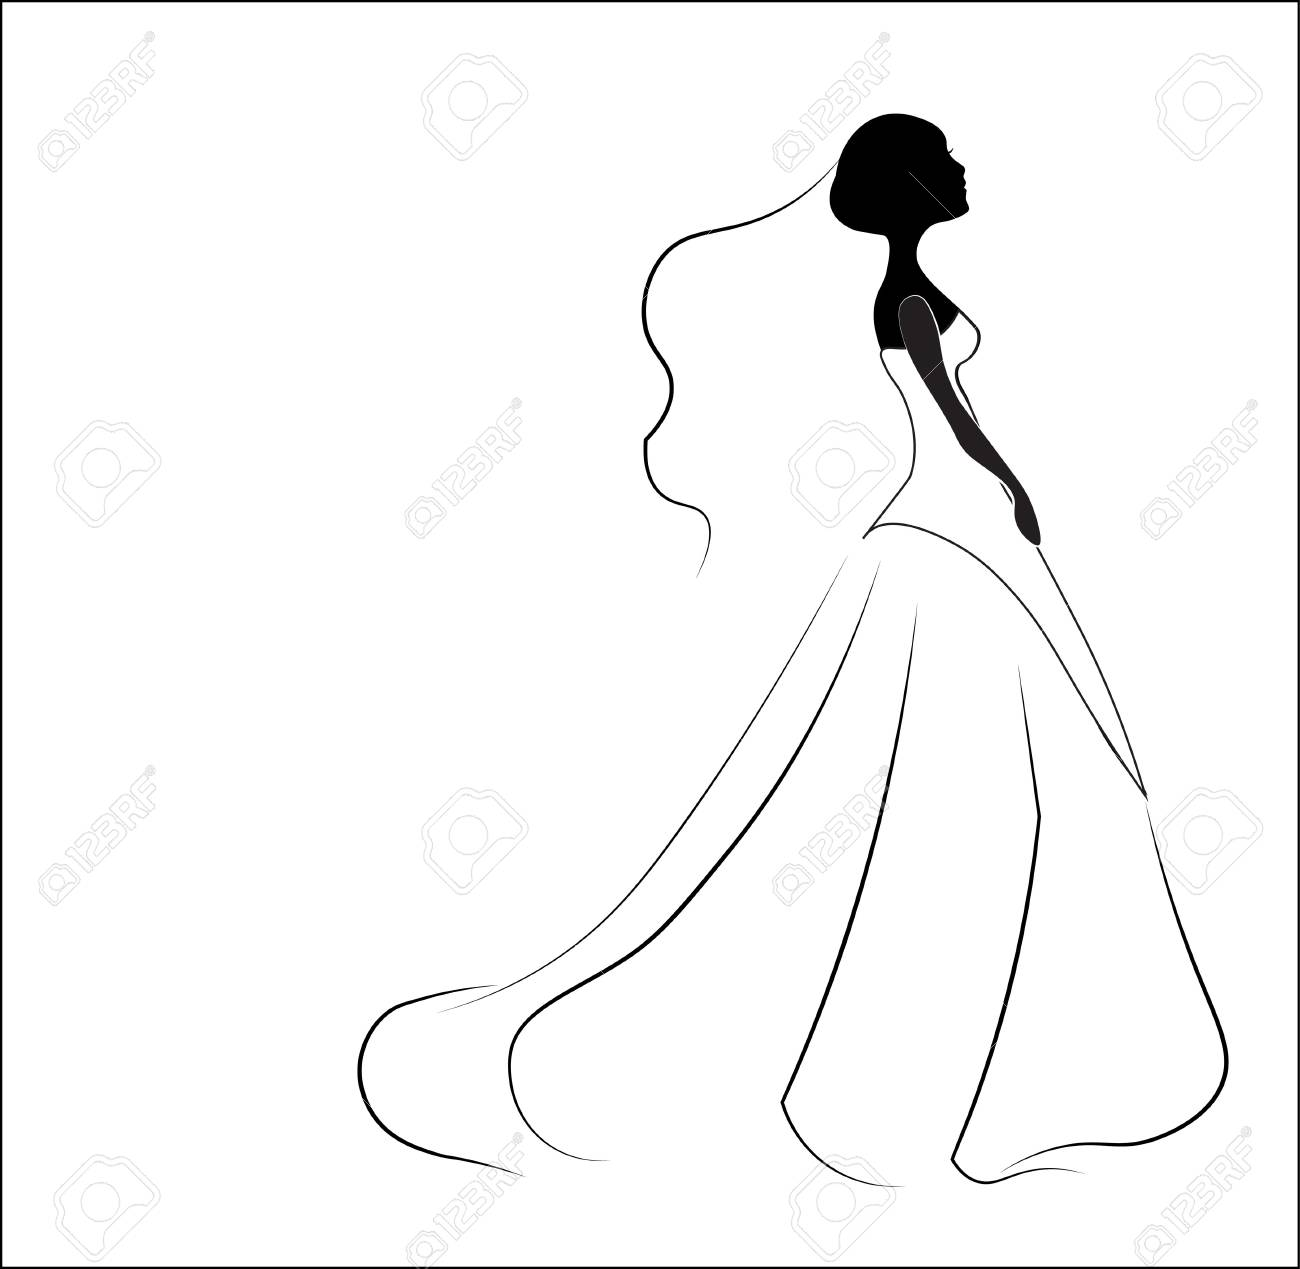 Silhouette Of The Bride, For Wedding Invitation Royalty Free ...